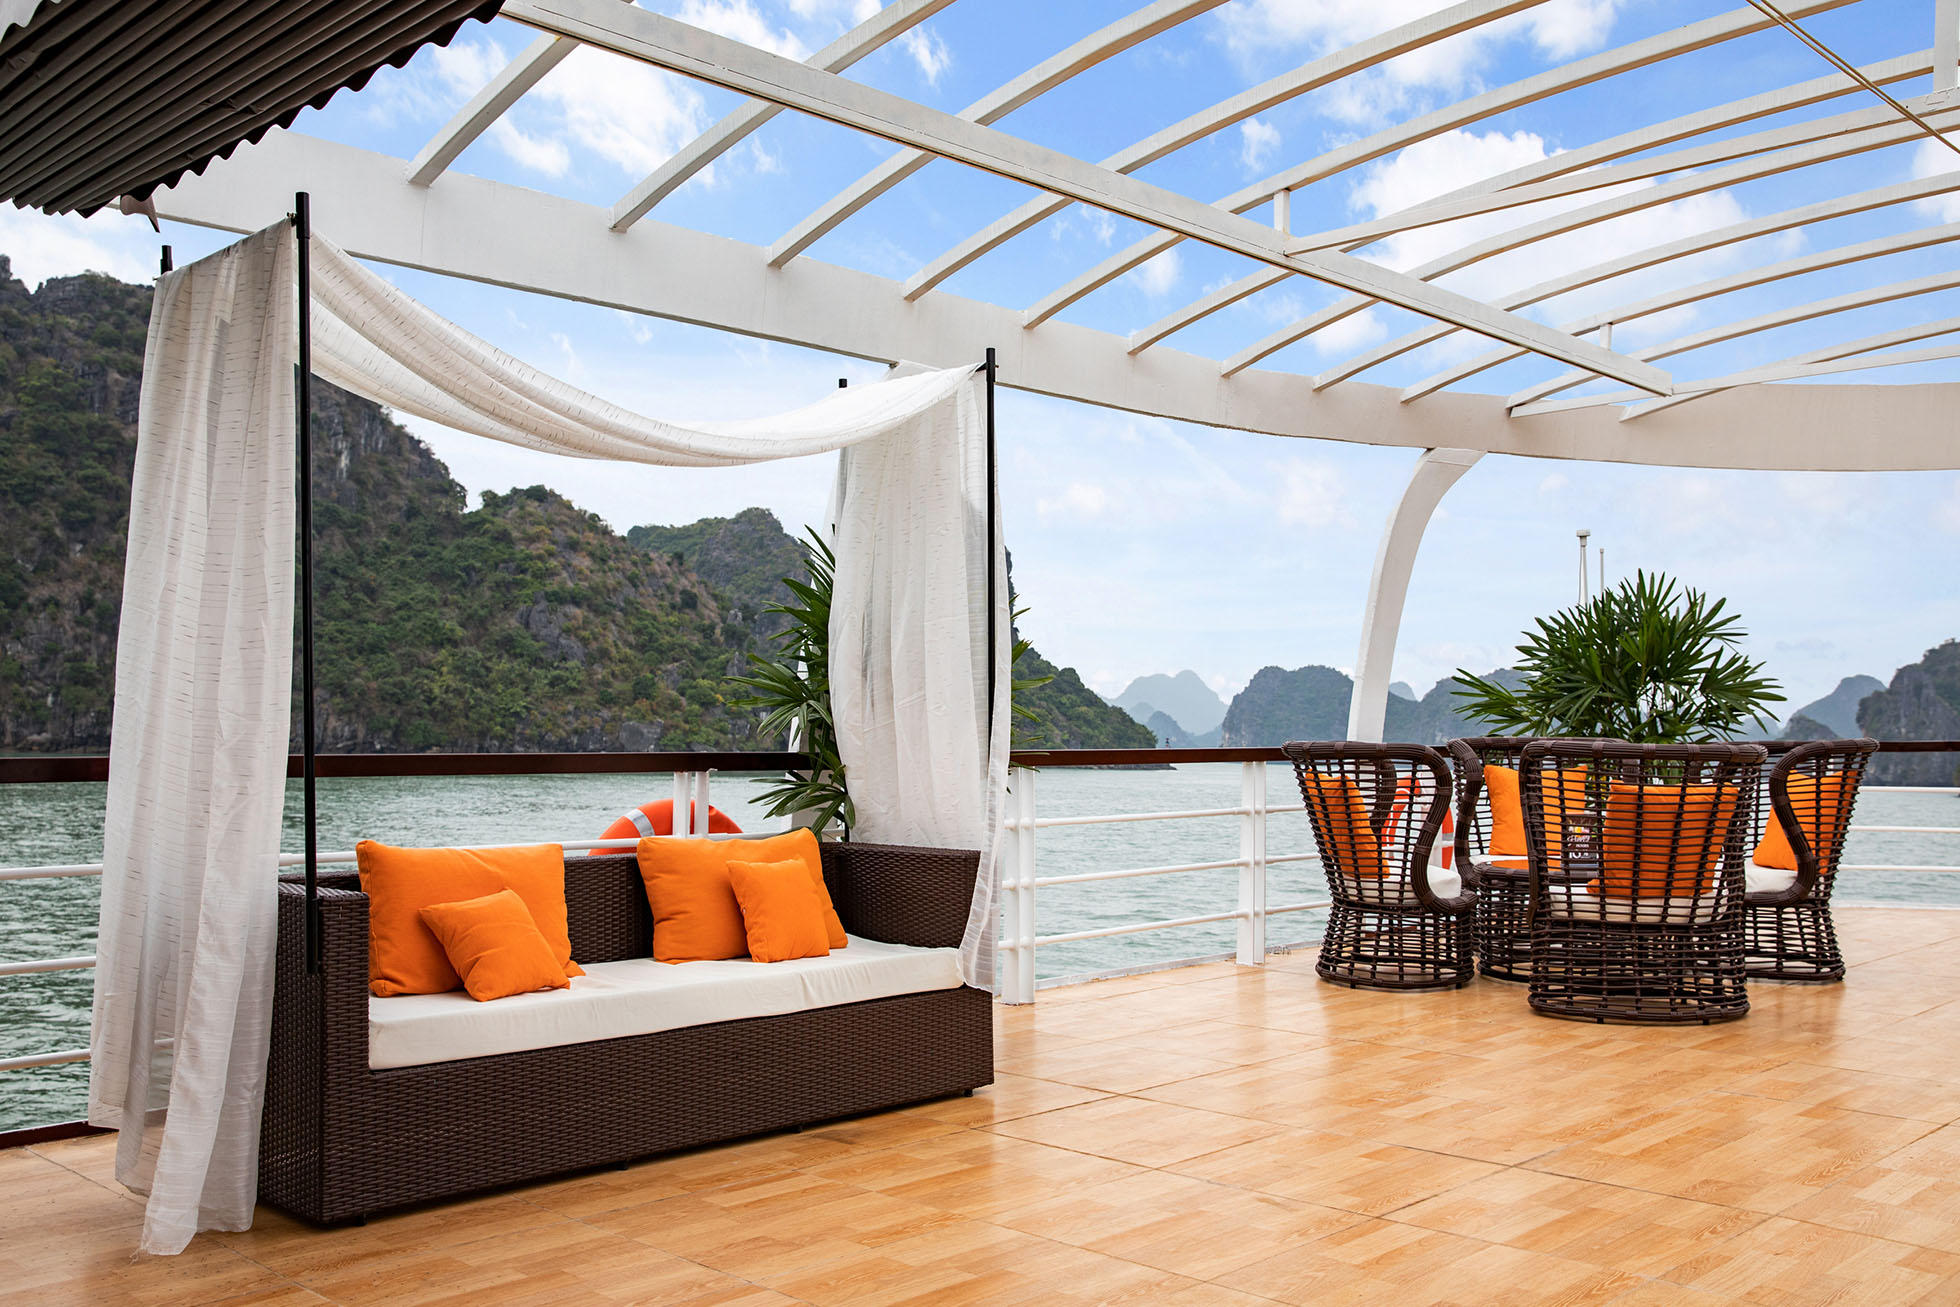 Unique Lan Ha - Halong bay full day tour 6